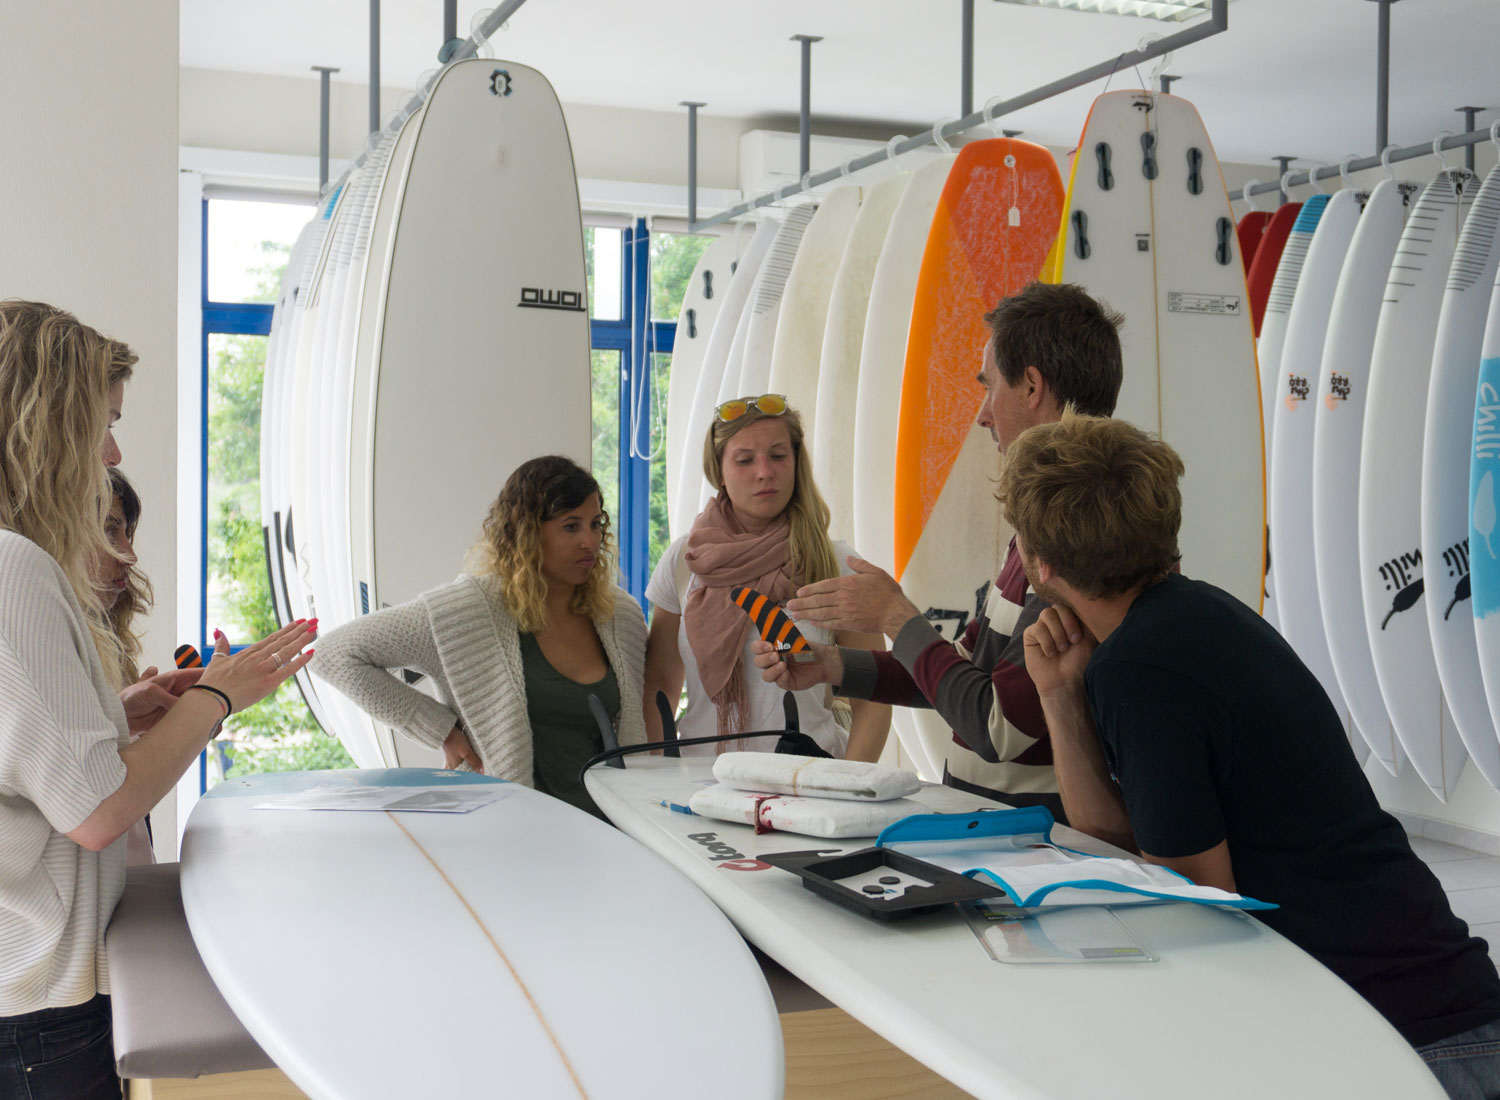 Free surfboard analyzing and test drive in Lagos